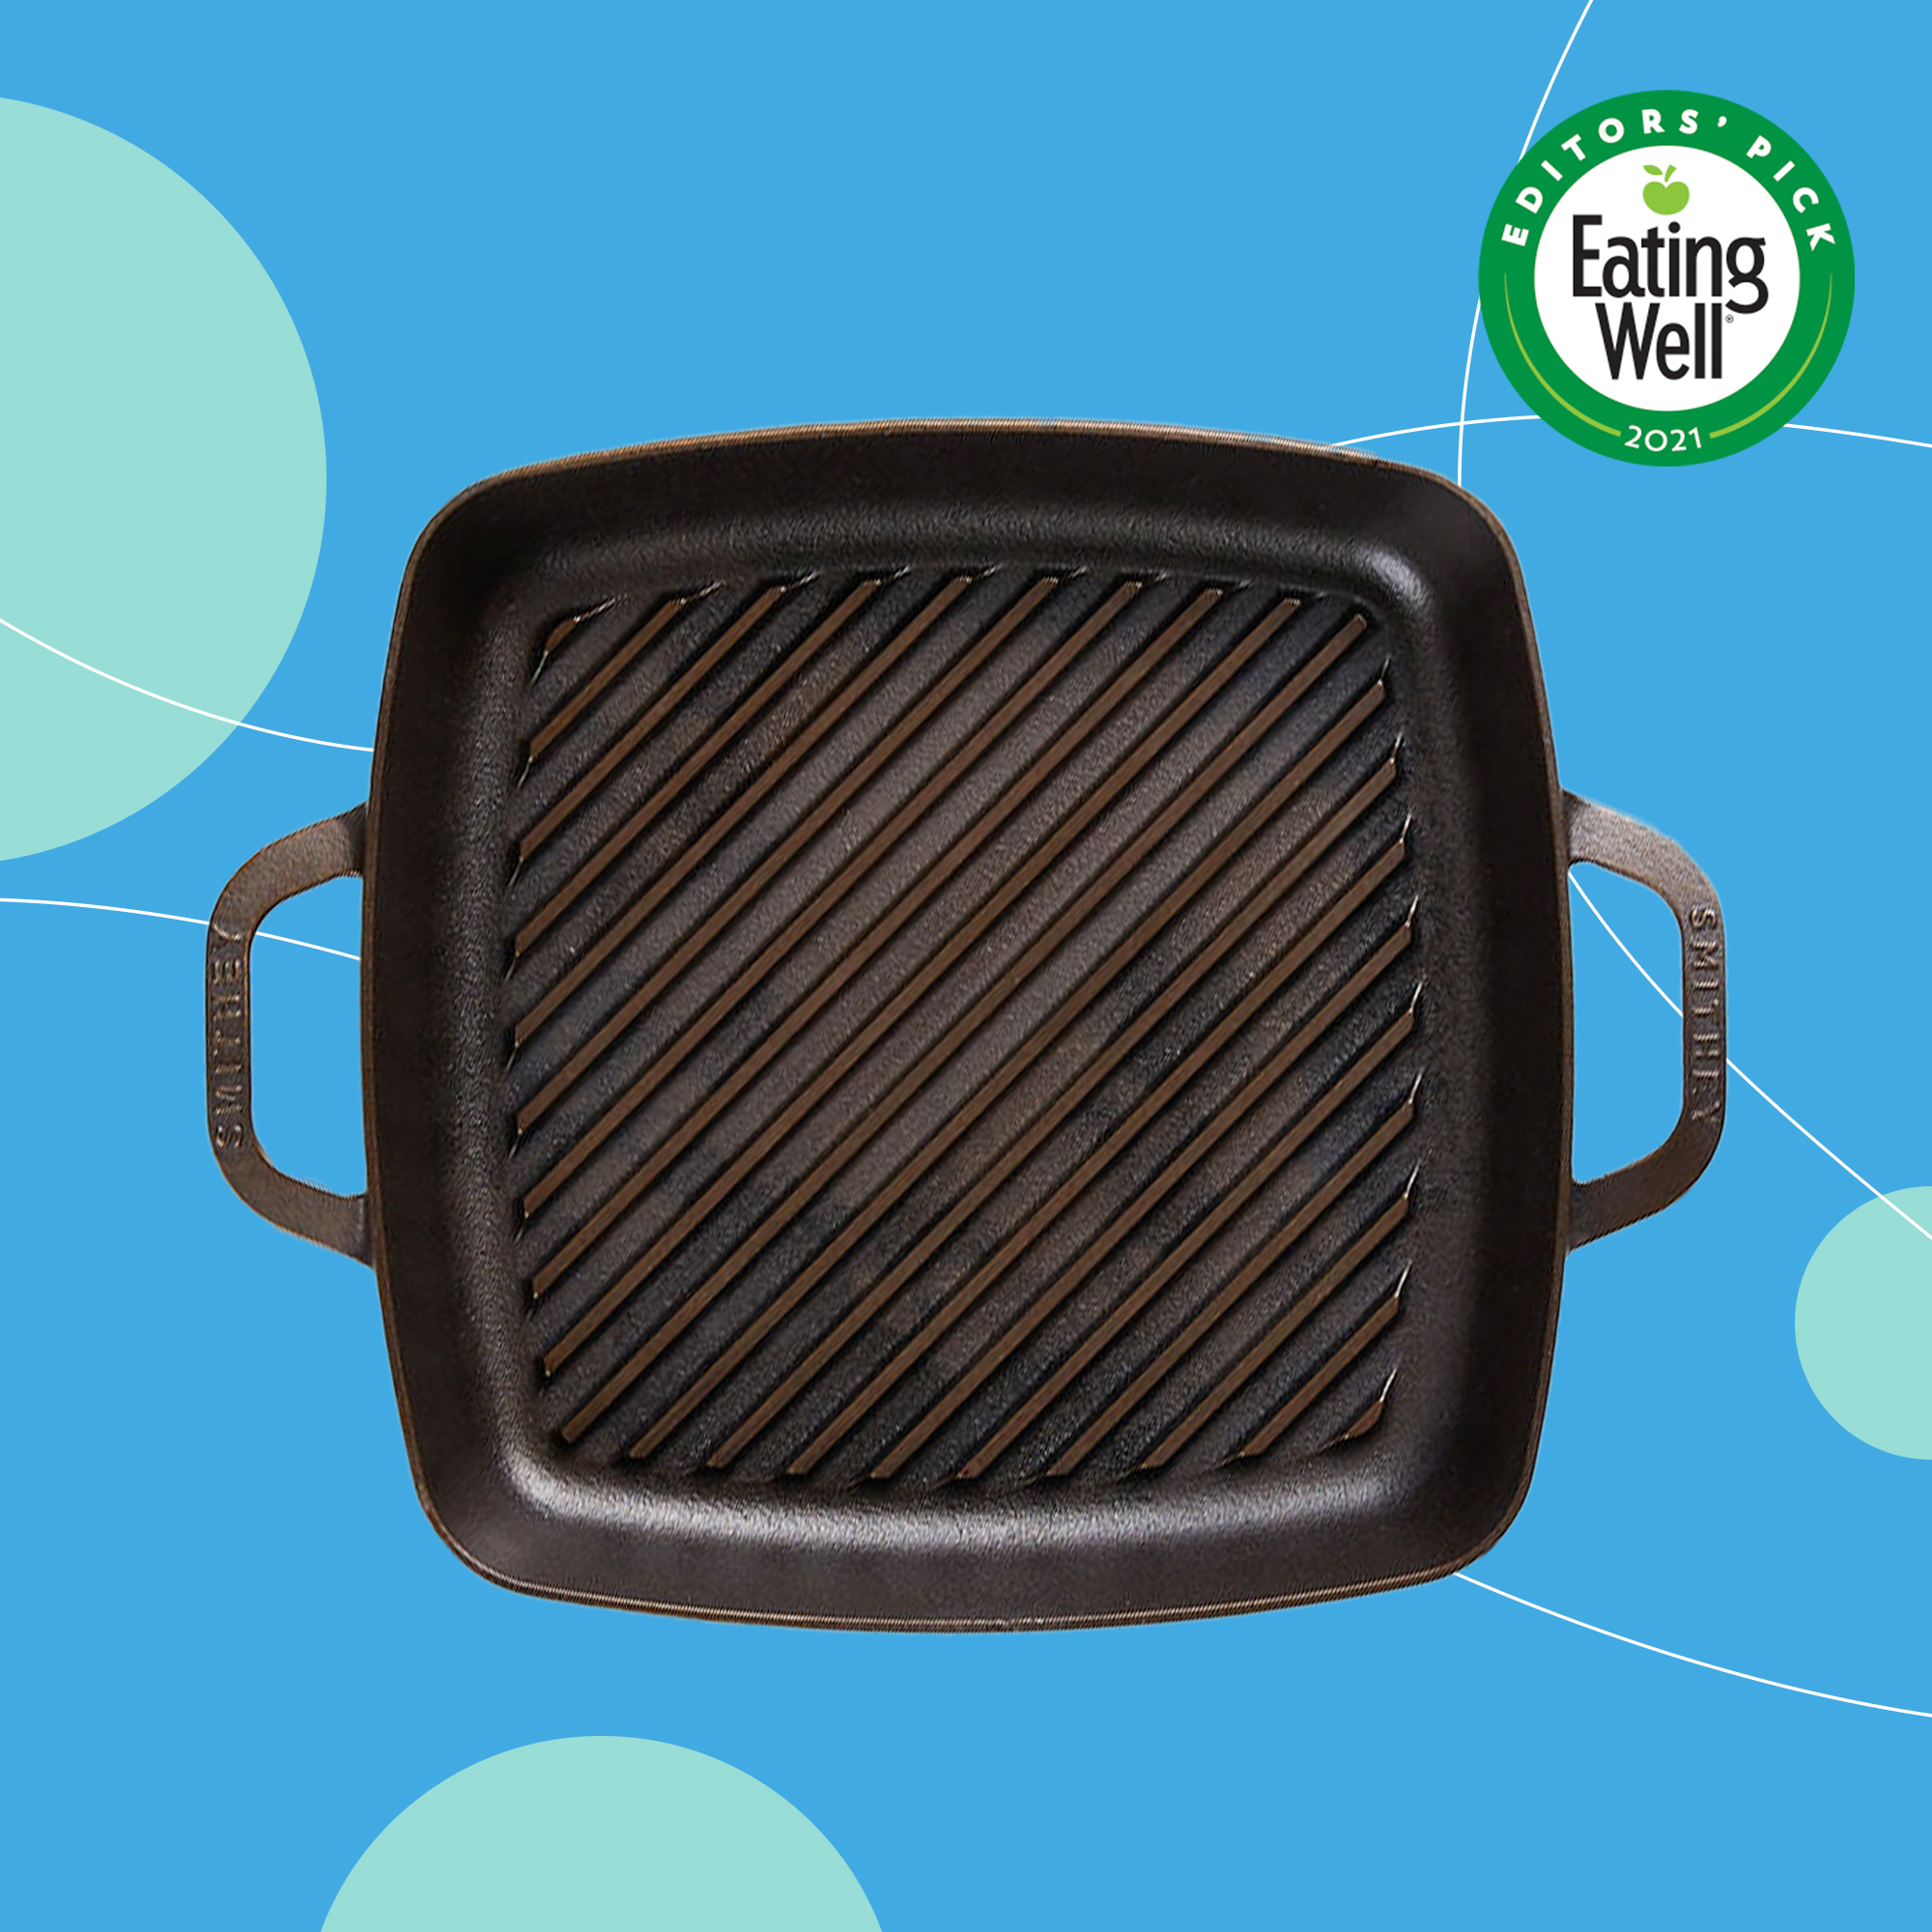 smithey grill pan